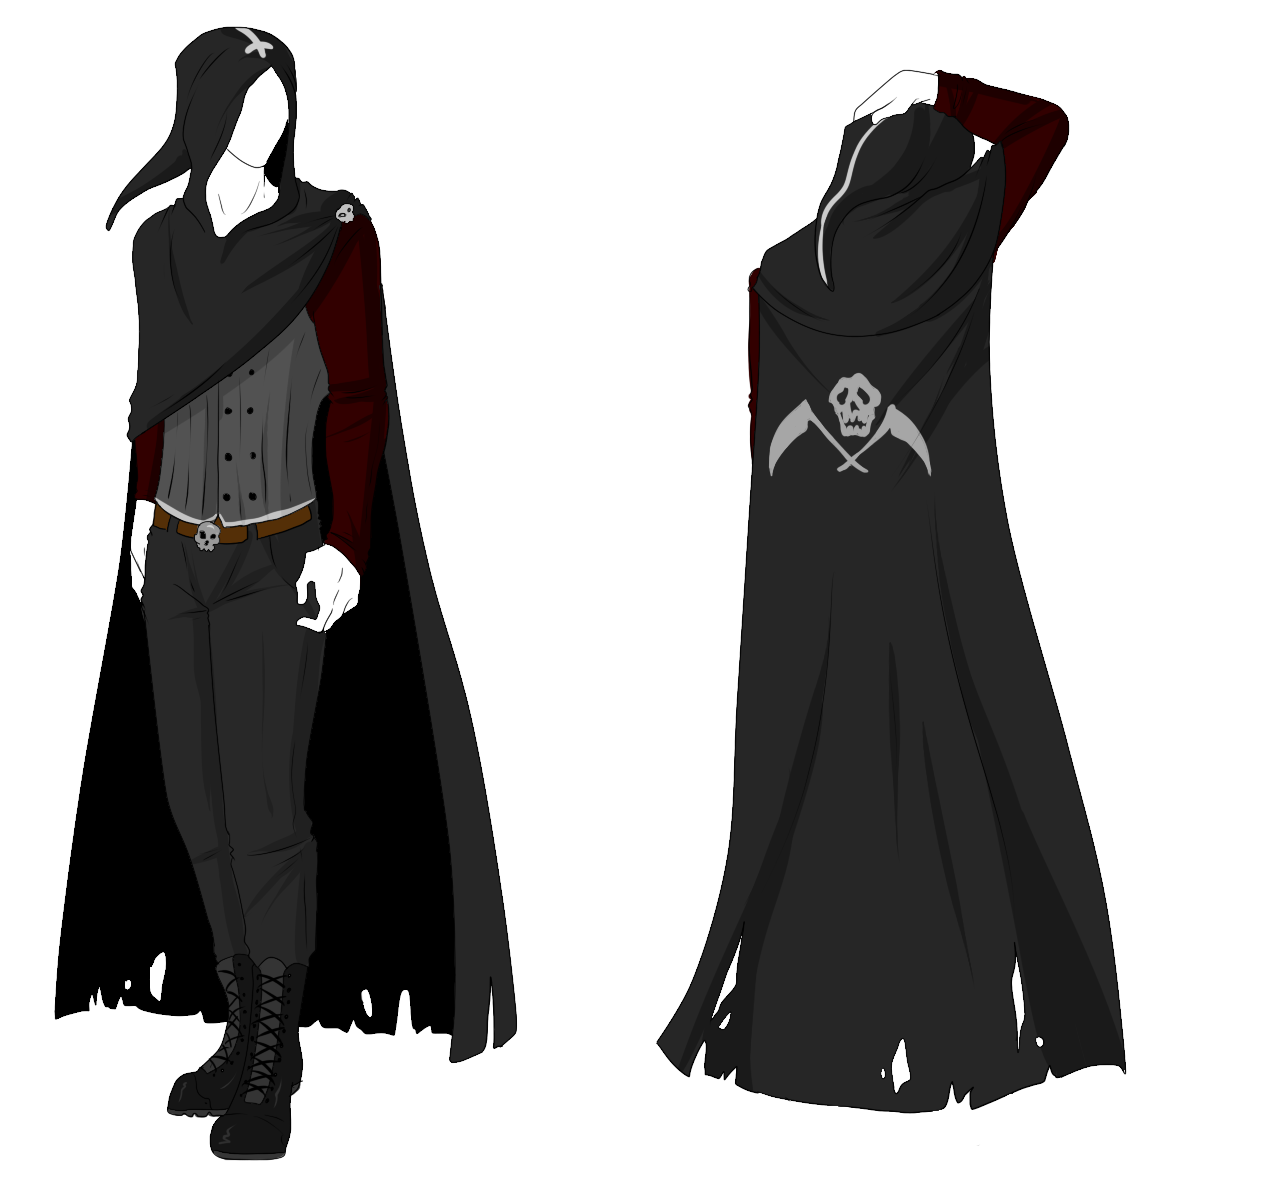 Layered Cape Cloak Situation Clothes Design Fantasy Clothing Character Outfits